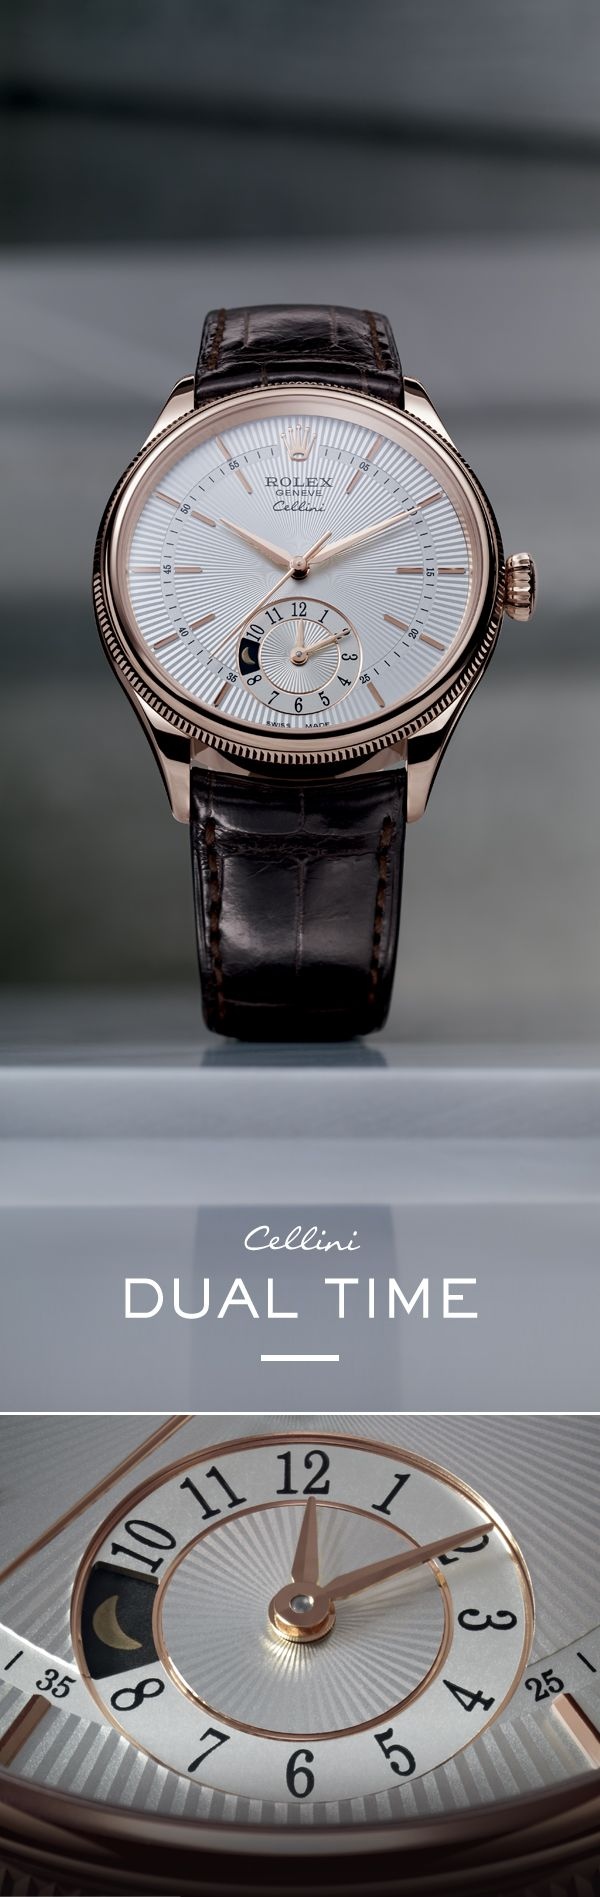 "The Rolex Cellini Dual Time 39 mm in Everose gold with a silver dial featuring a ""rayon flammé de la gloire"" guilloche motif and mounted on an alligator leather strap. #RolexOfficial #Baselworld /// Founded in 1842, GOBBI is an official retail store for refined jewelleries and luxury watches such as Rolex in Milan. Check the website : http://www.gobbi1842.it/?lang=en"